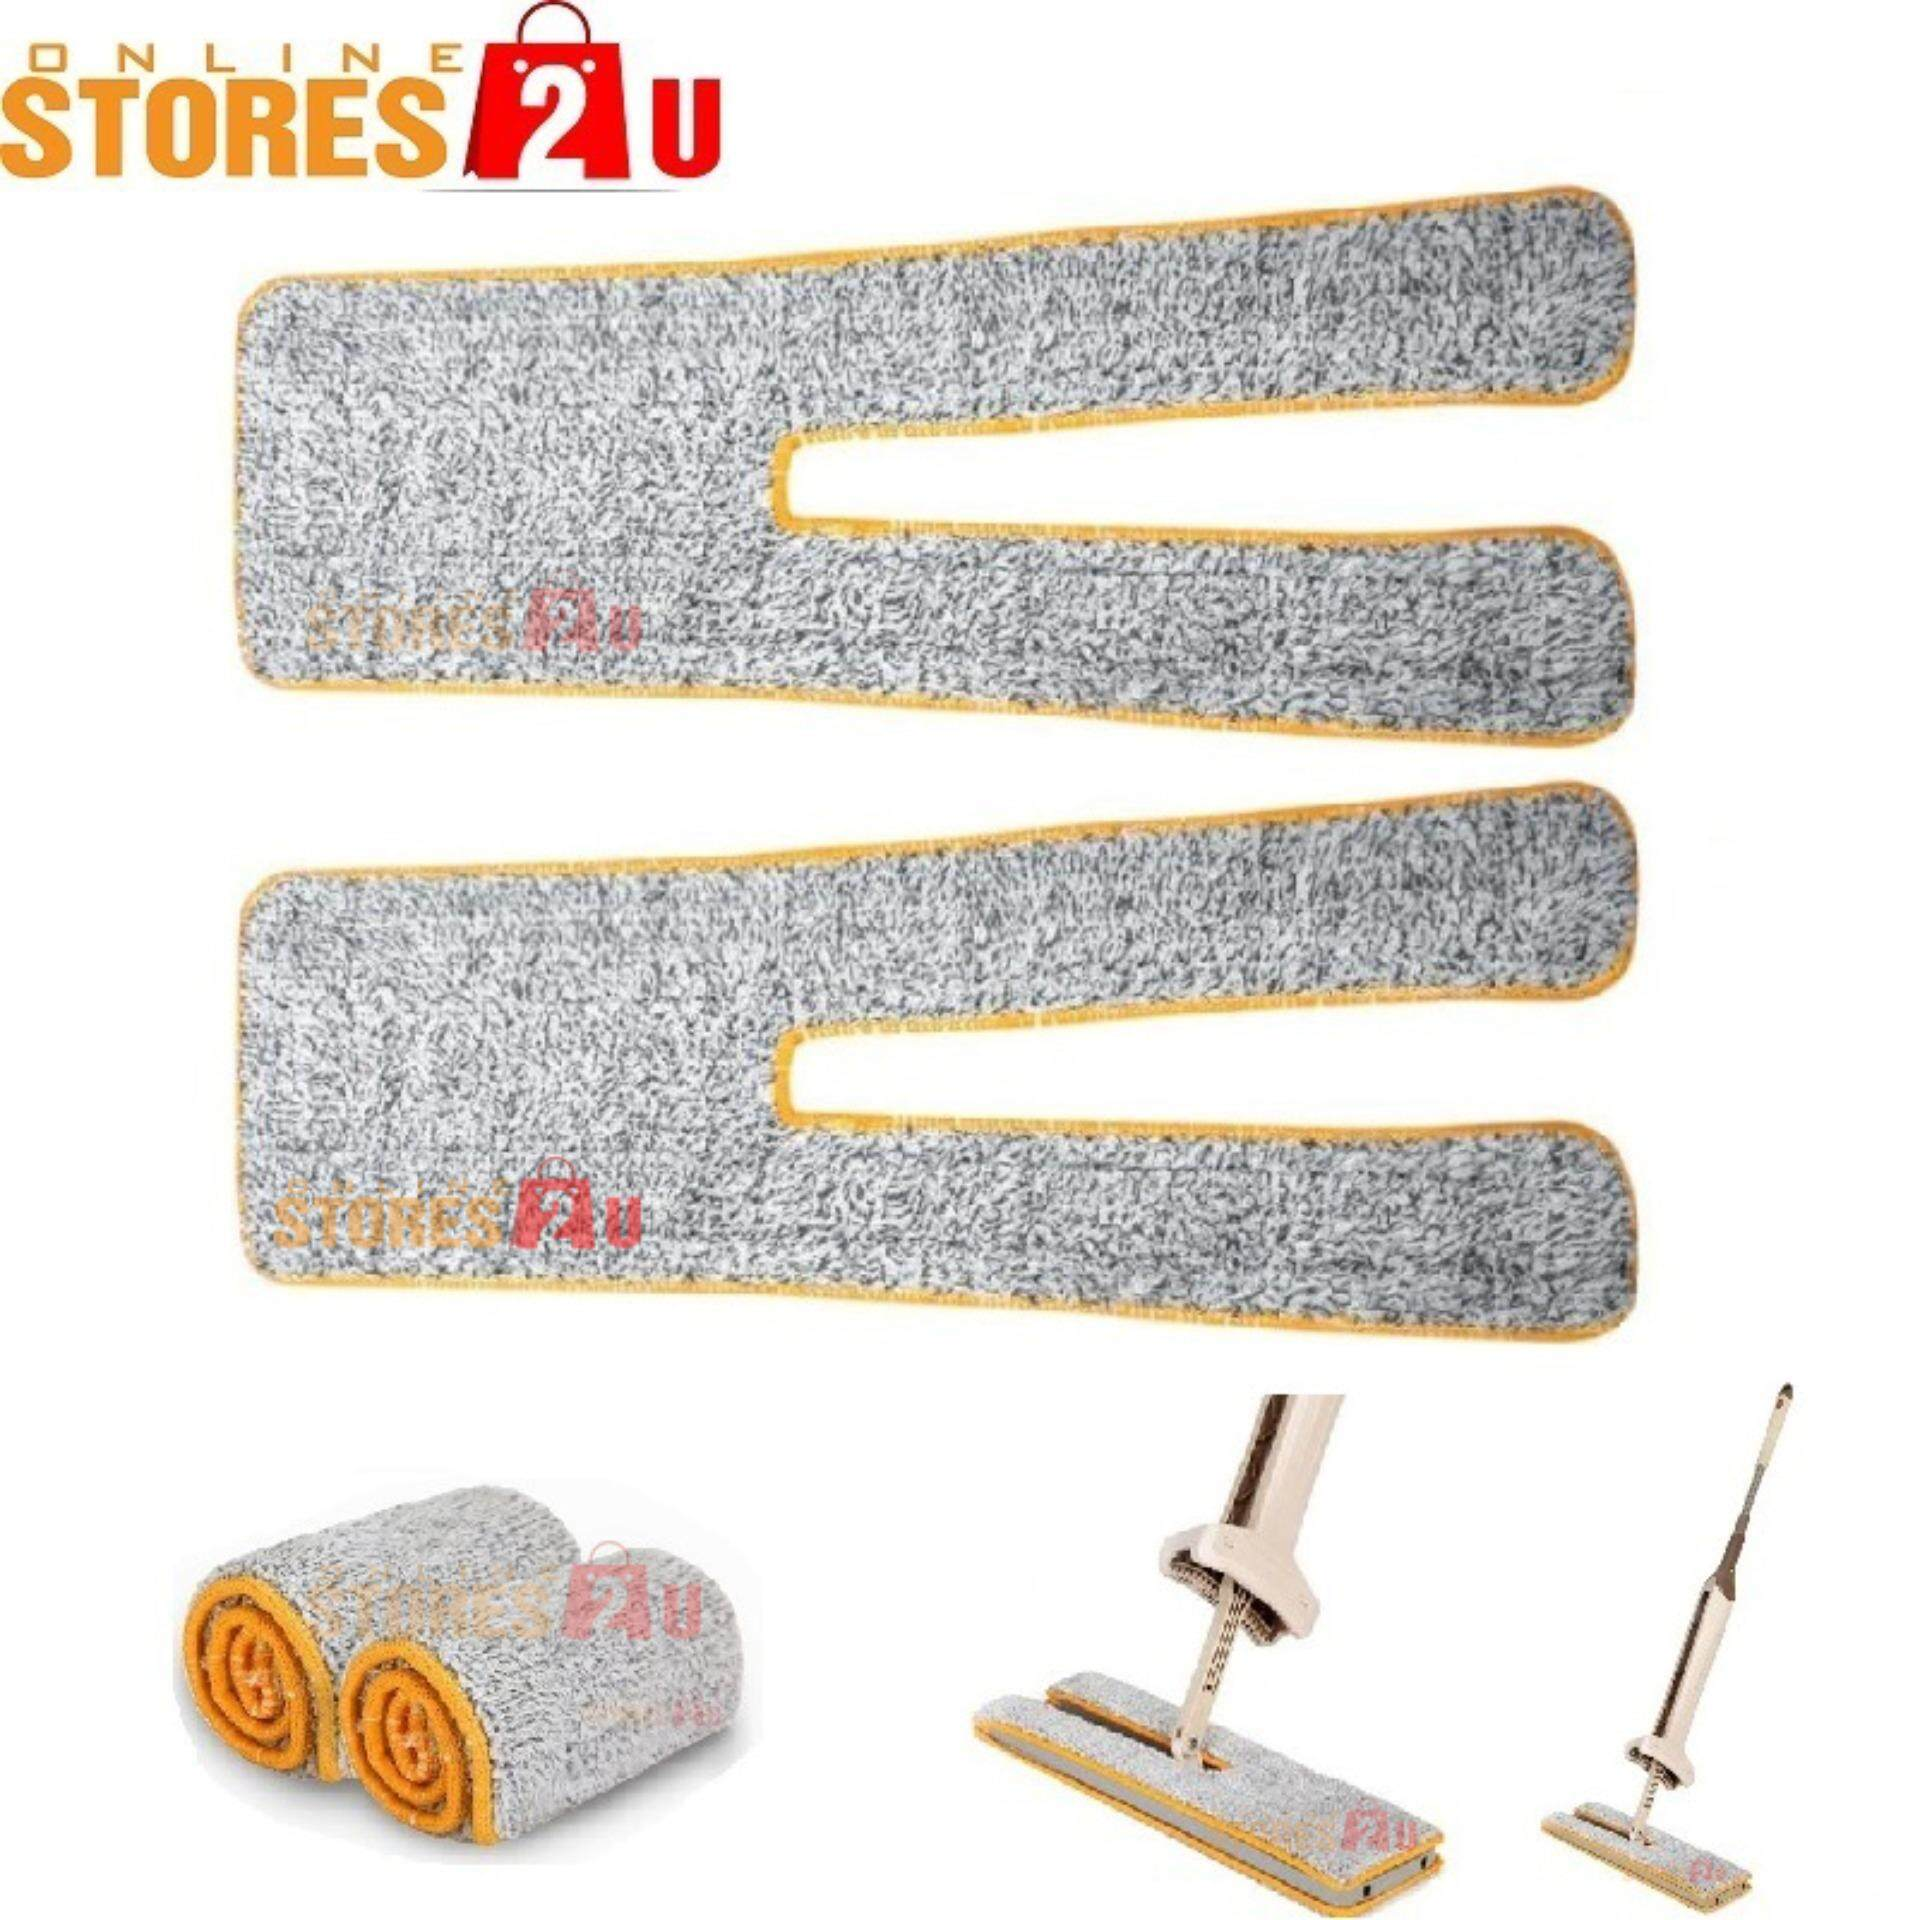 2pc [Stores2u] 38cm Replacement Microfiber Mop Head Refill Pad Accessories Parts for 38cm Double Sided Mop